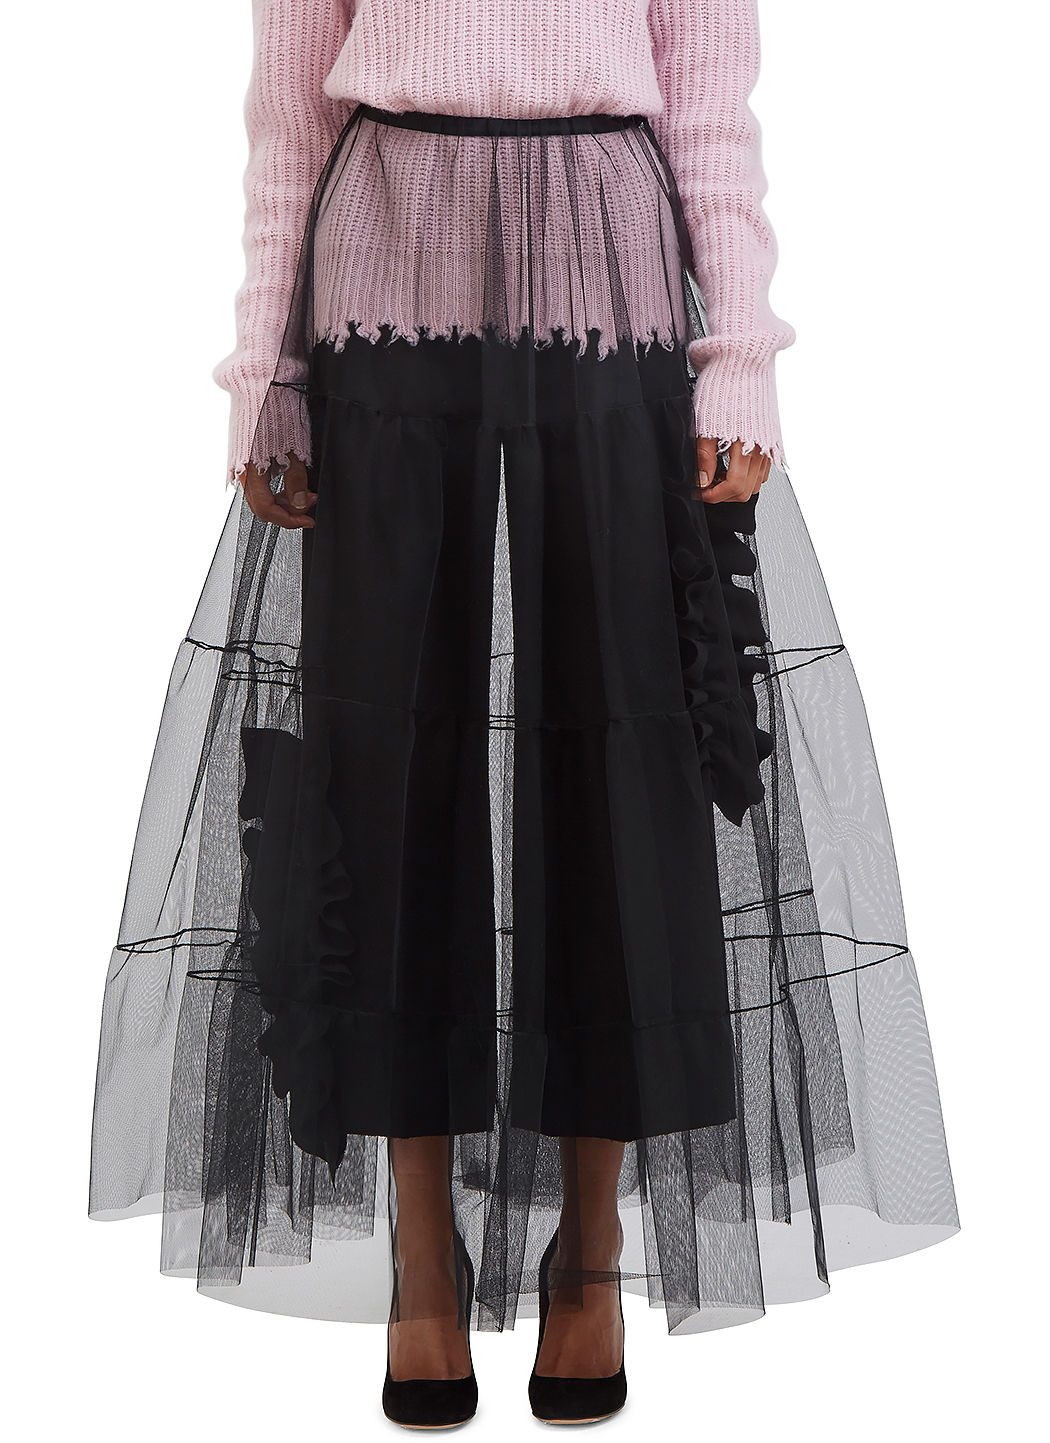 Black Tulle Skirt Msgm Cheap Enjoy Where Can You Find Super Limited Edition Sale Online Popular Cheap Price AYHD0pY